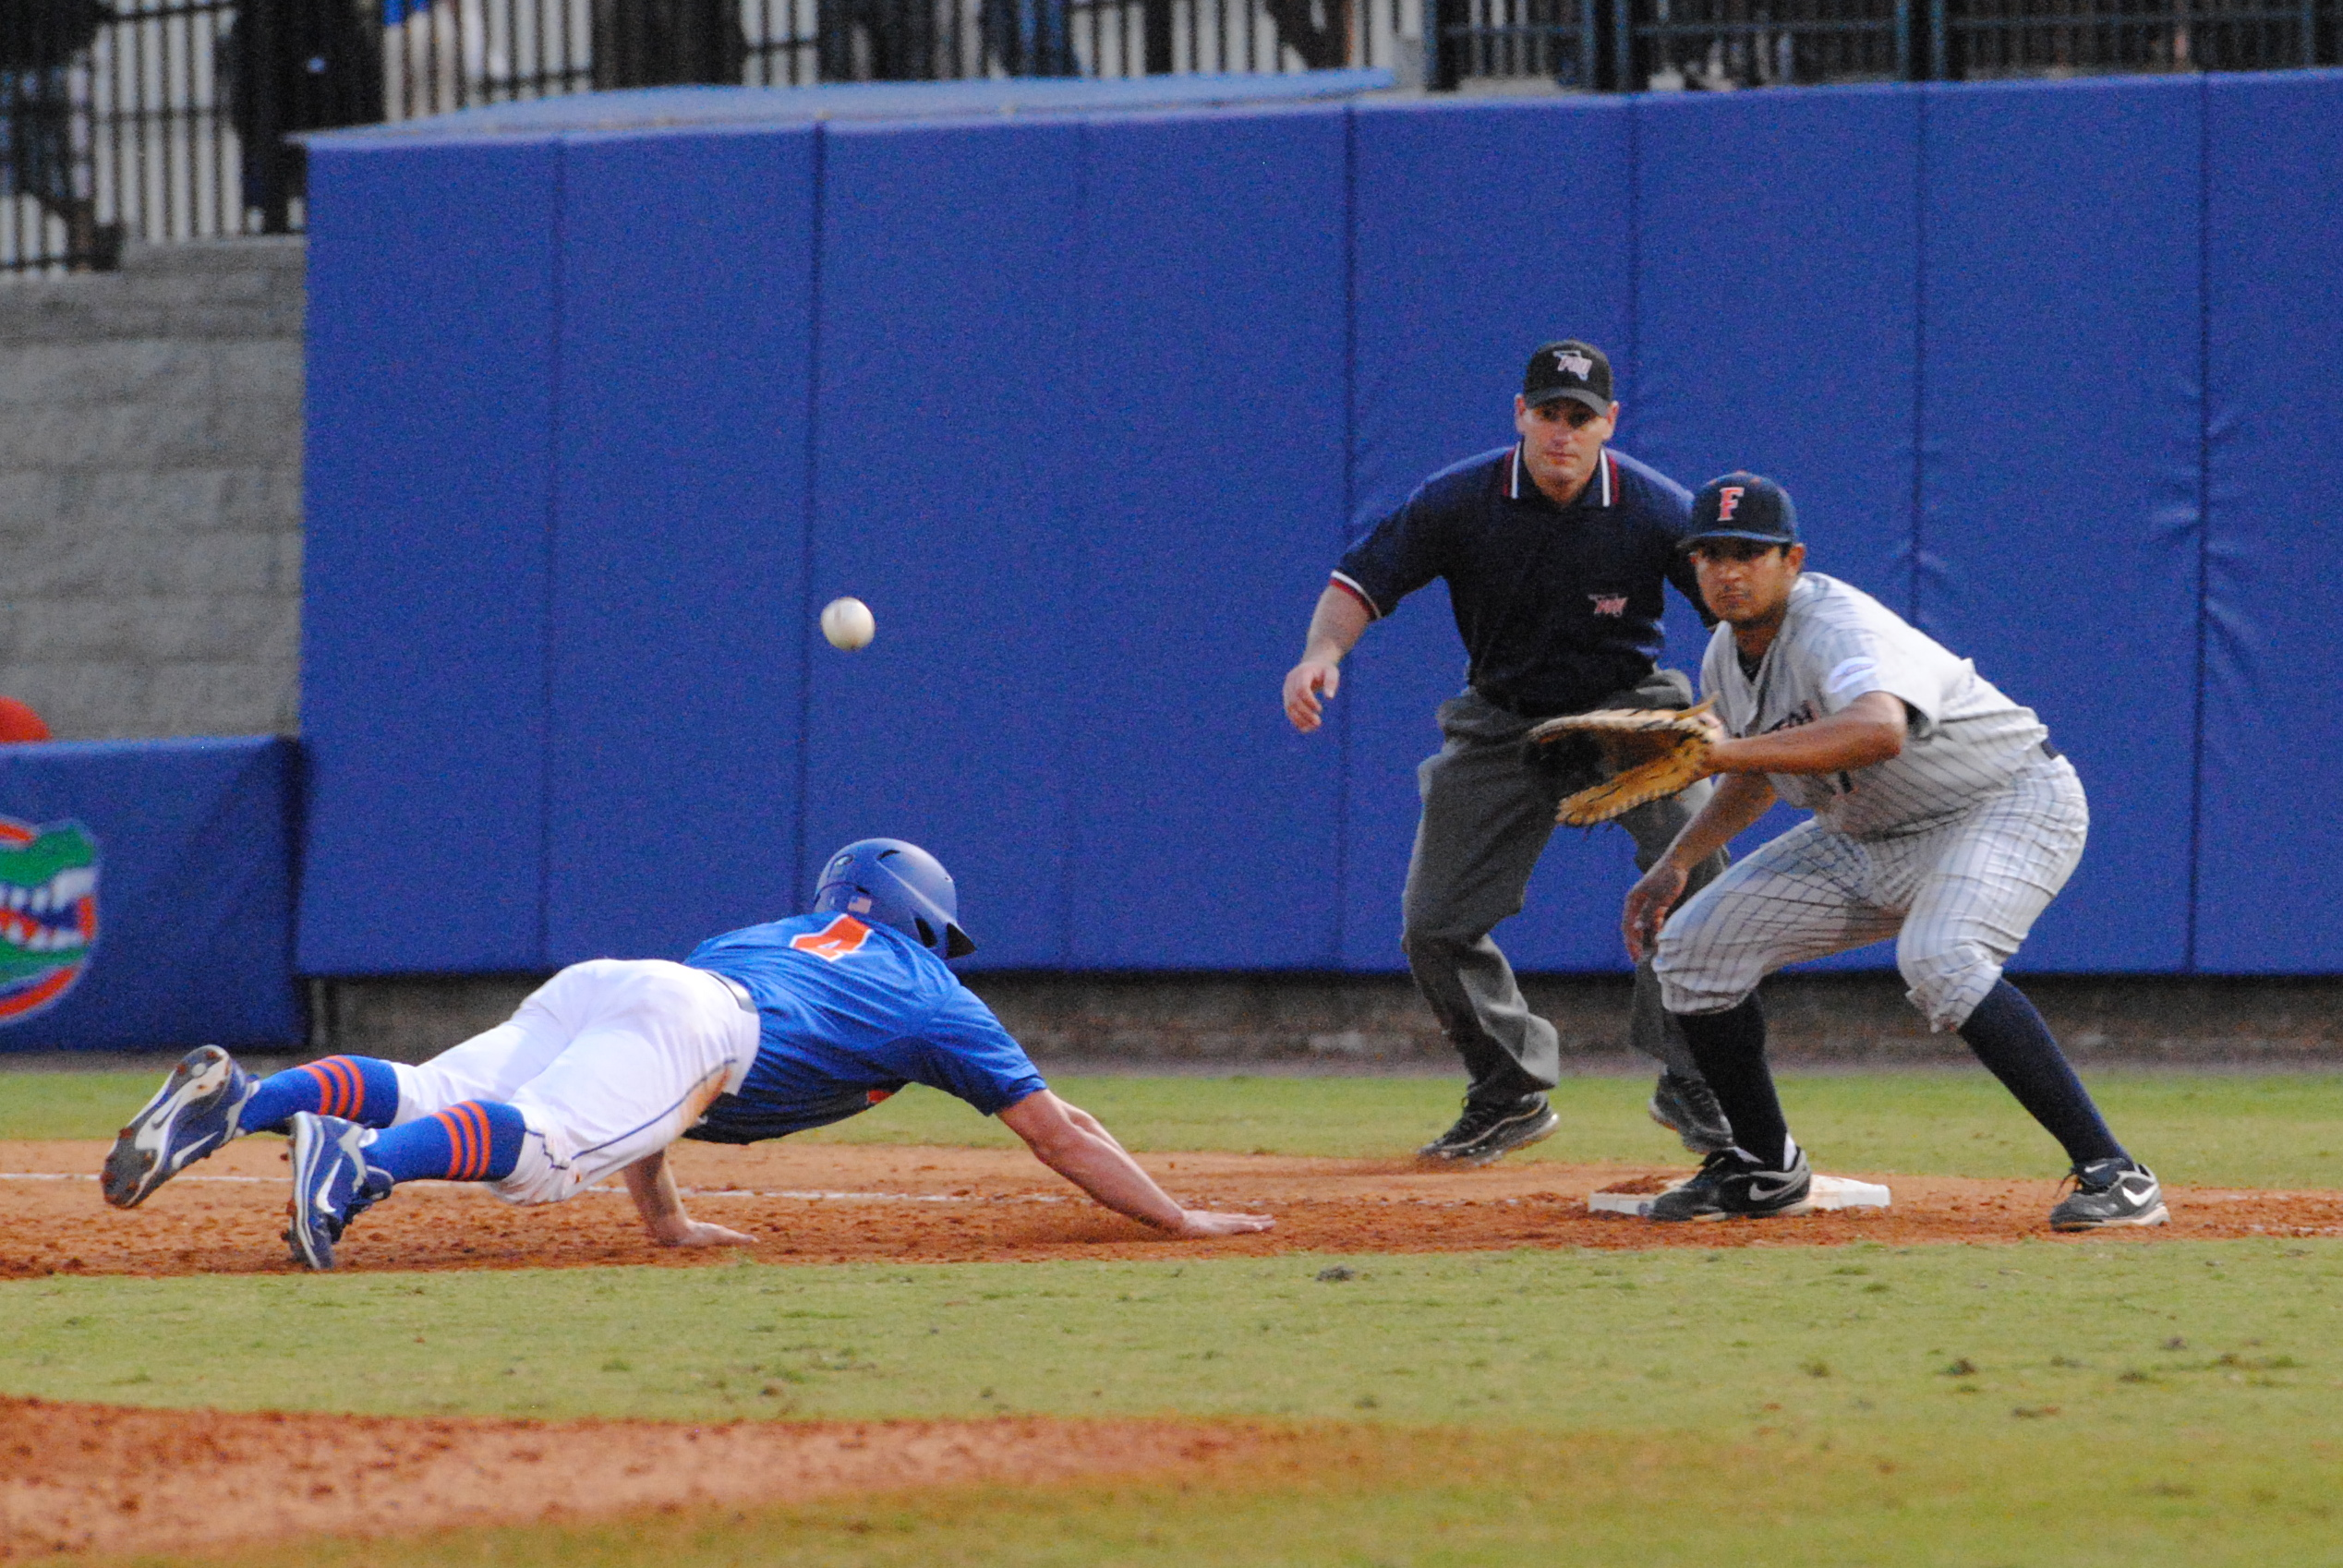 Junior Nolan Fontana dives into first base after leading off.